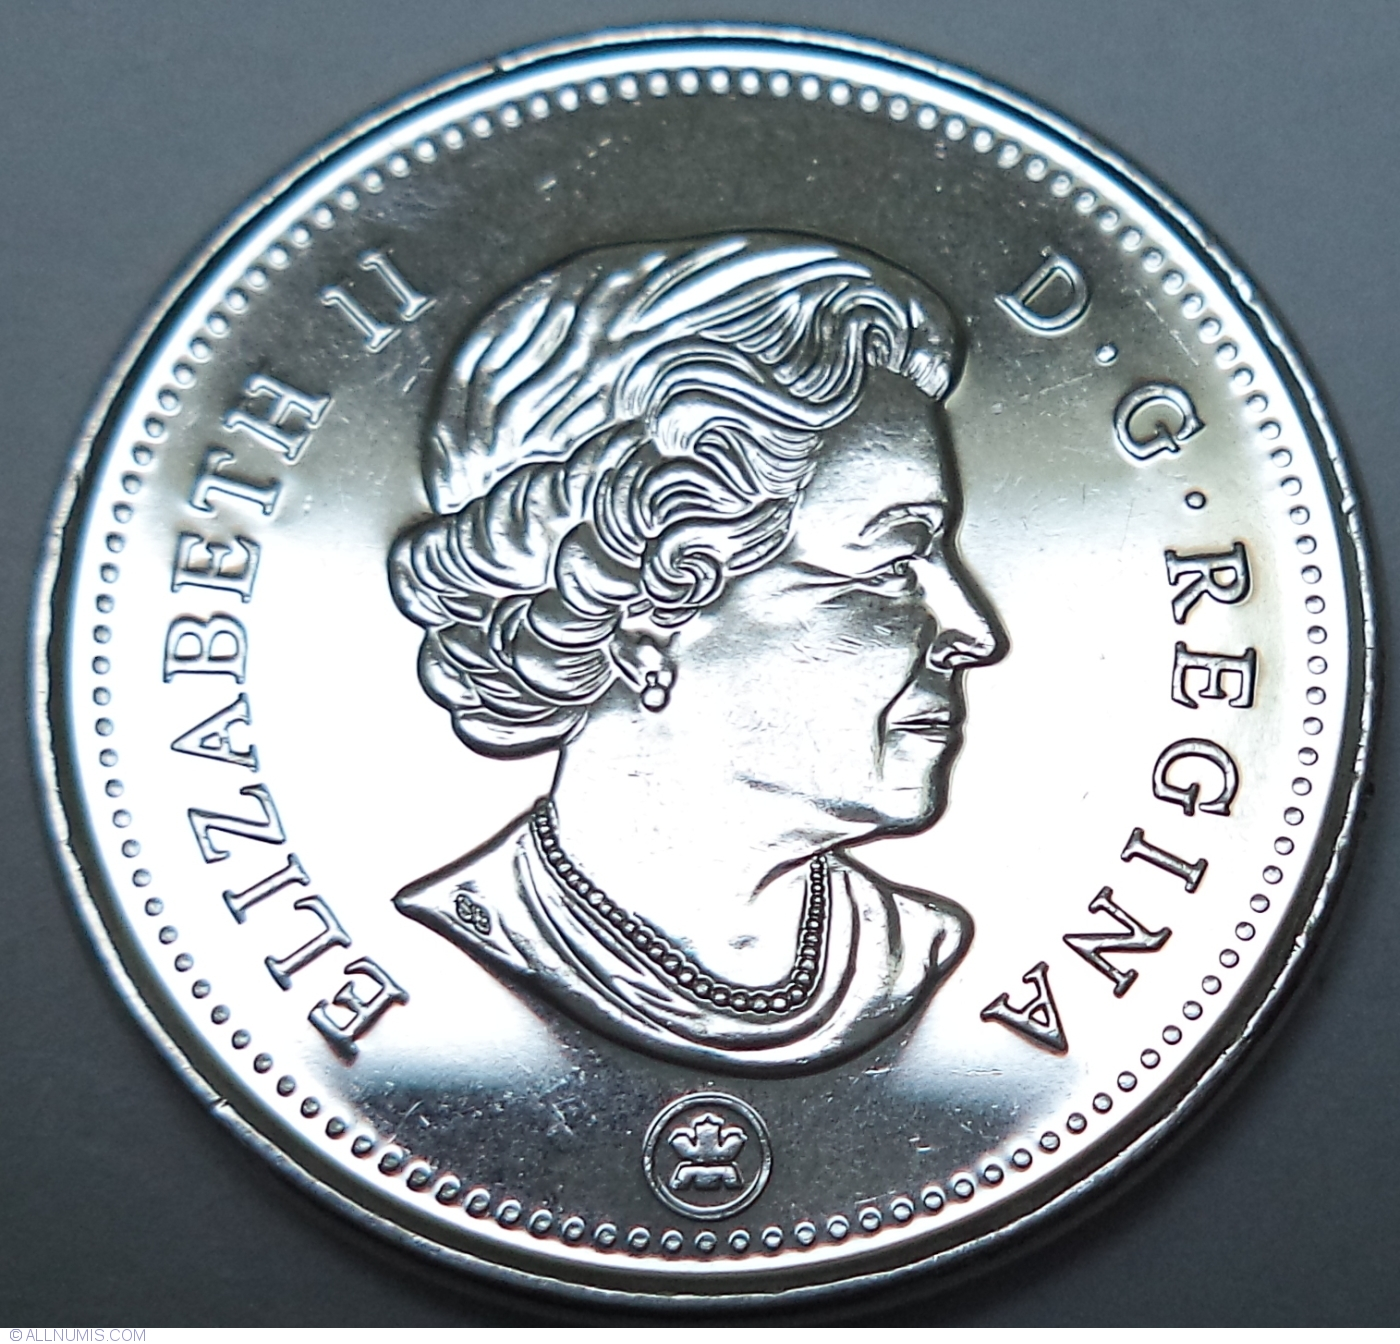 2016 CANADA 5 CENTS